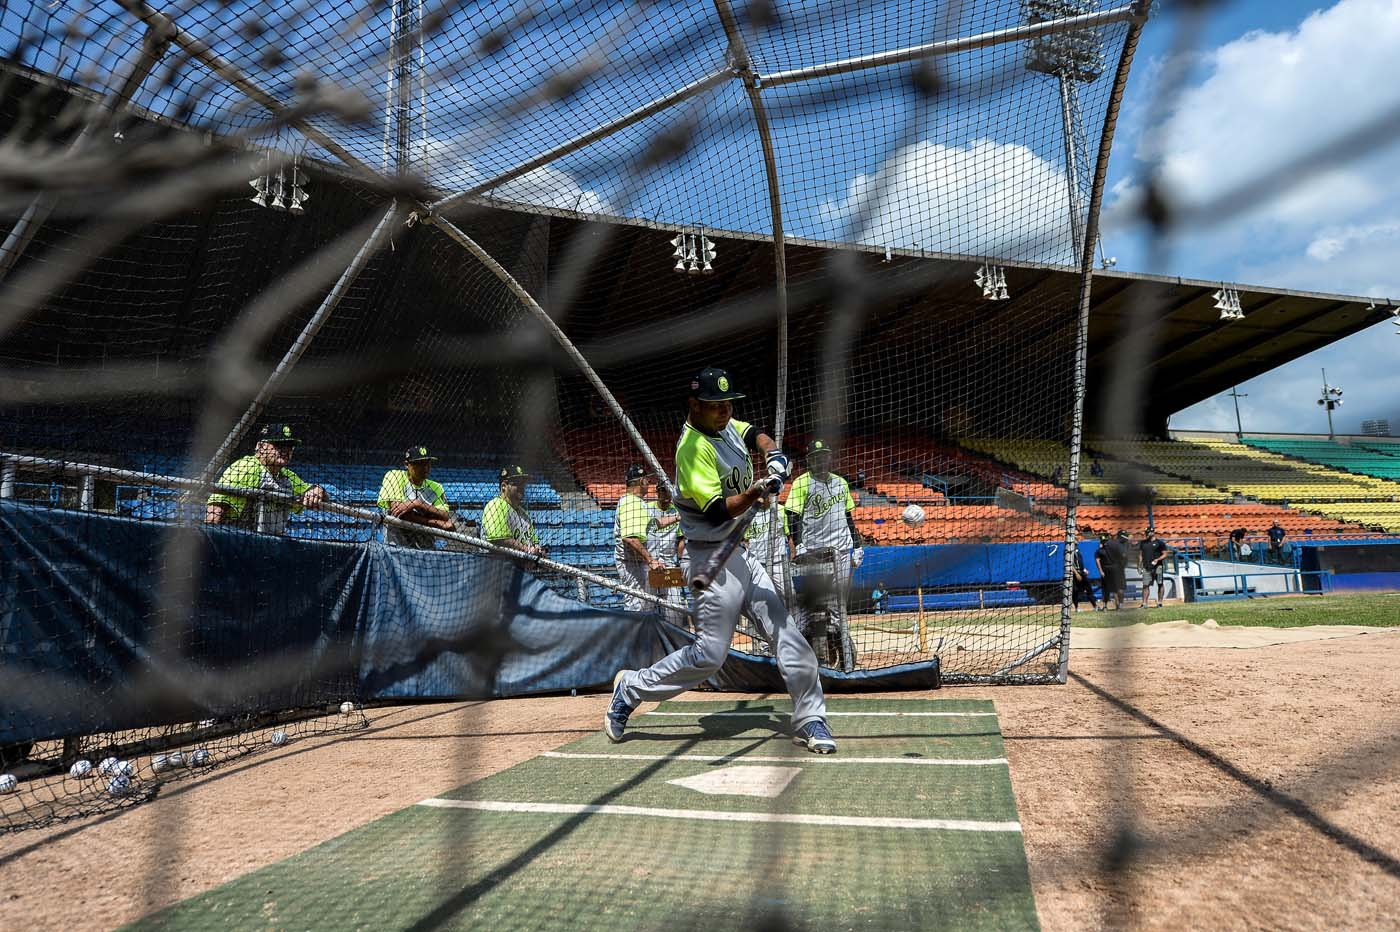 Players of the Venezuelan baseball team Leones del Caracas attend a training session at the Universitario stadium in Caracas, on September 18, 2017. While baseball is Venezuela's national sport, some fans are angry that the government, given the severity of the economic crisis and the political tension, will spend nearly ten million dollars on organizing the upcoming Winter League rather than on imports of food and medicine. / AFP PHOTO / FEDERICO PARRA